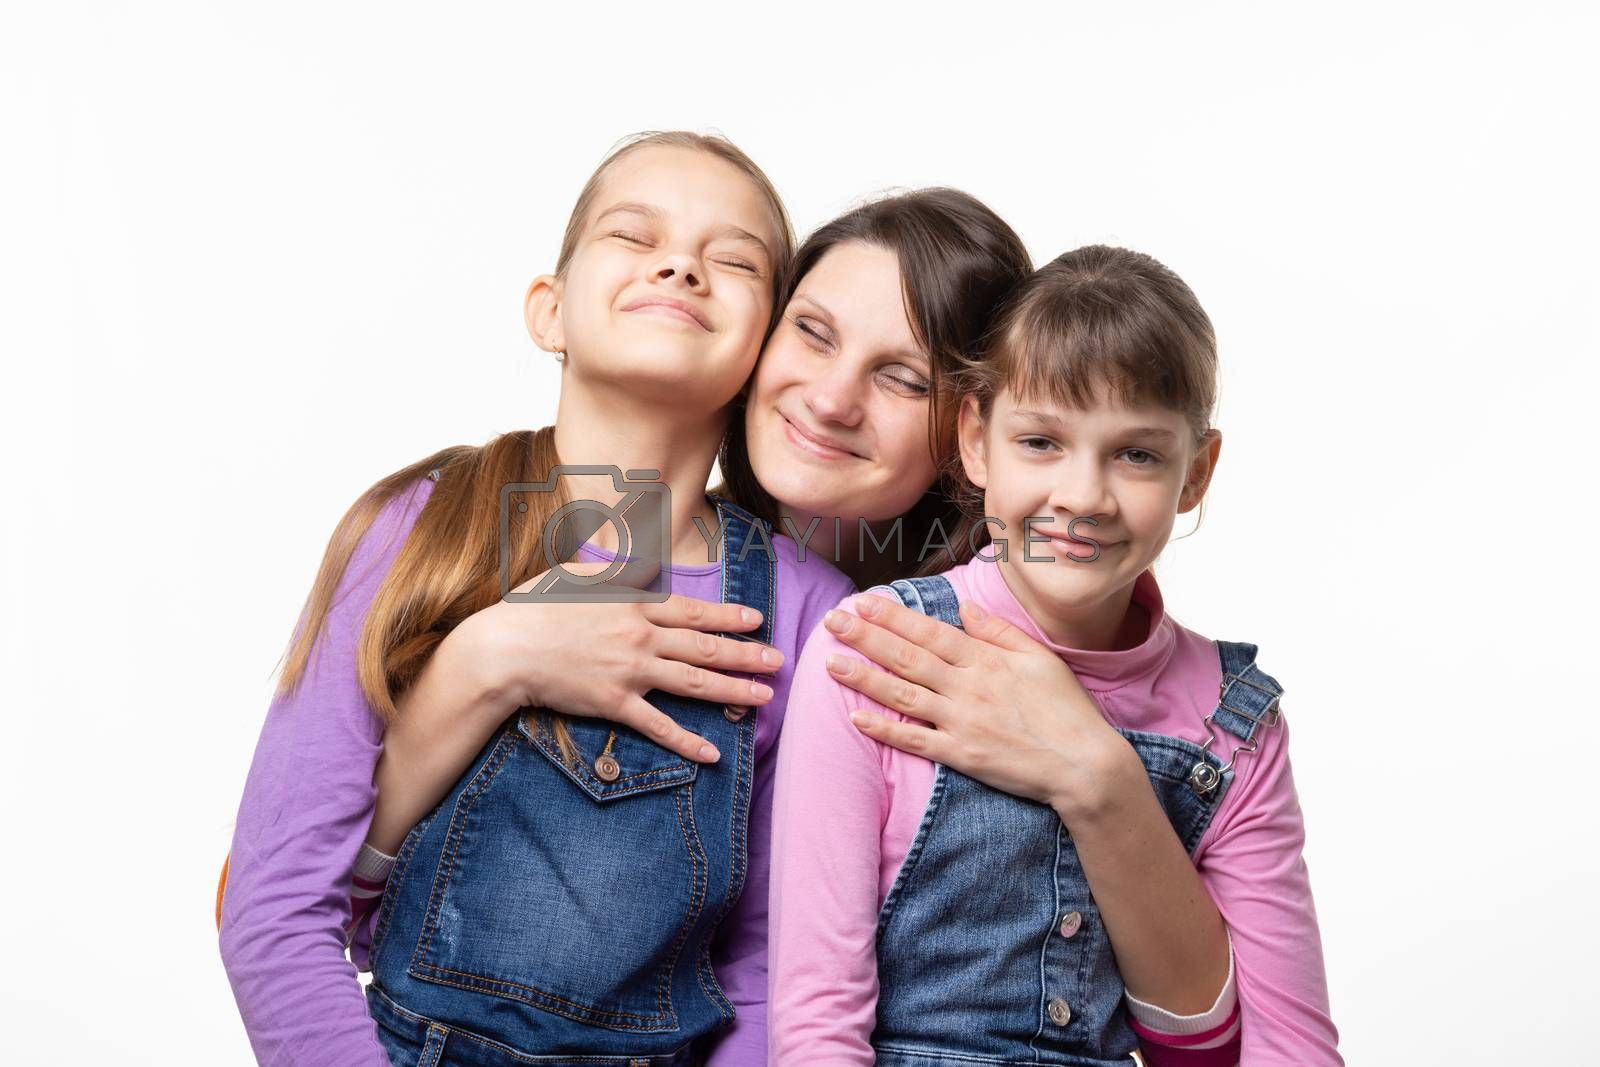 Mom happily clung to her daughters, isolated on white background